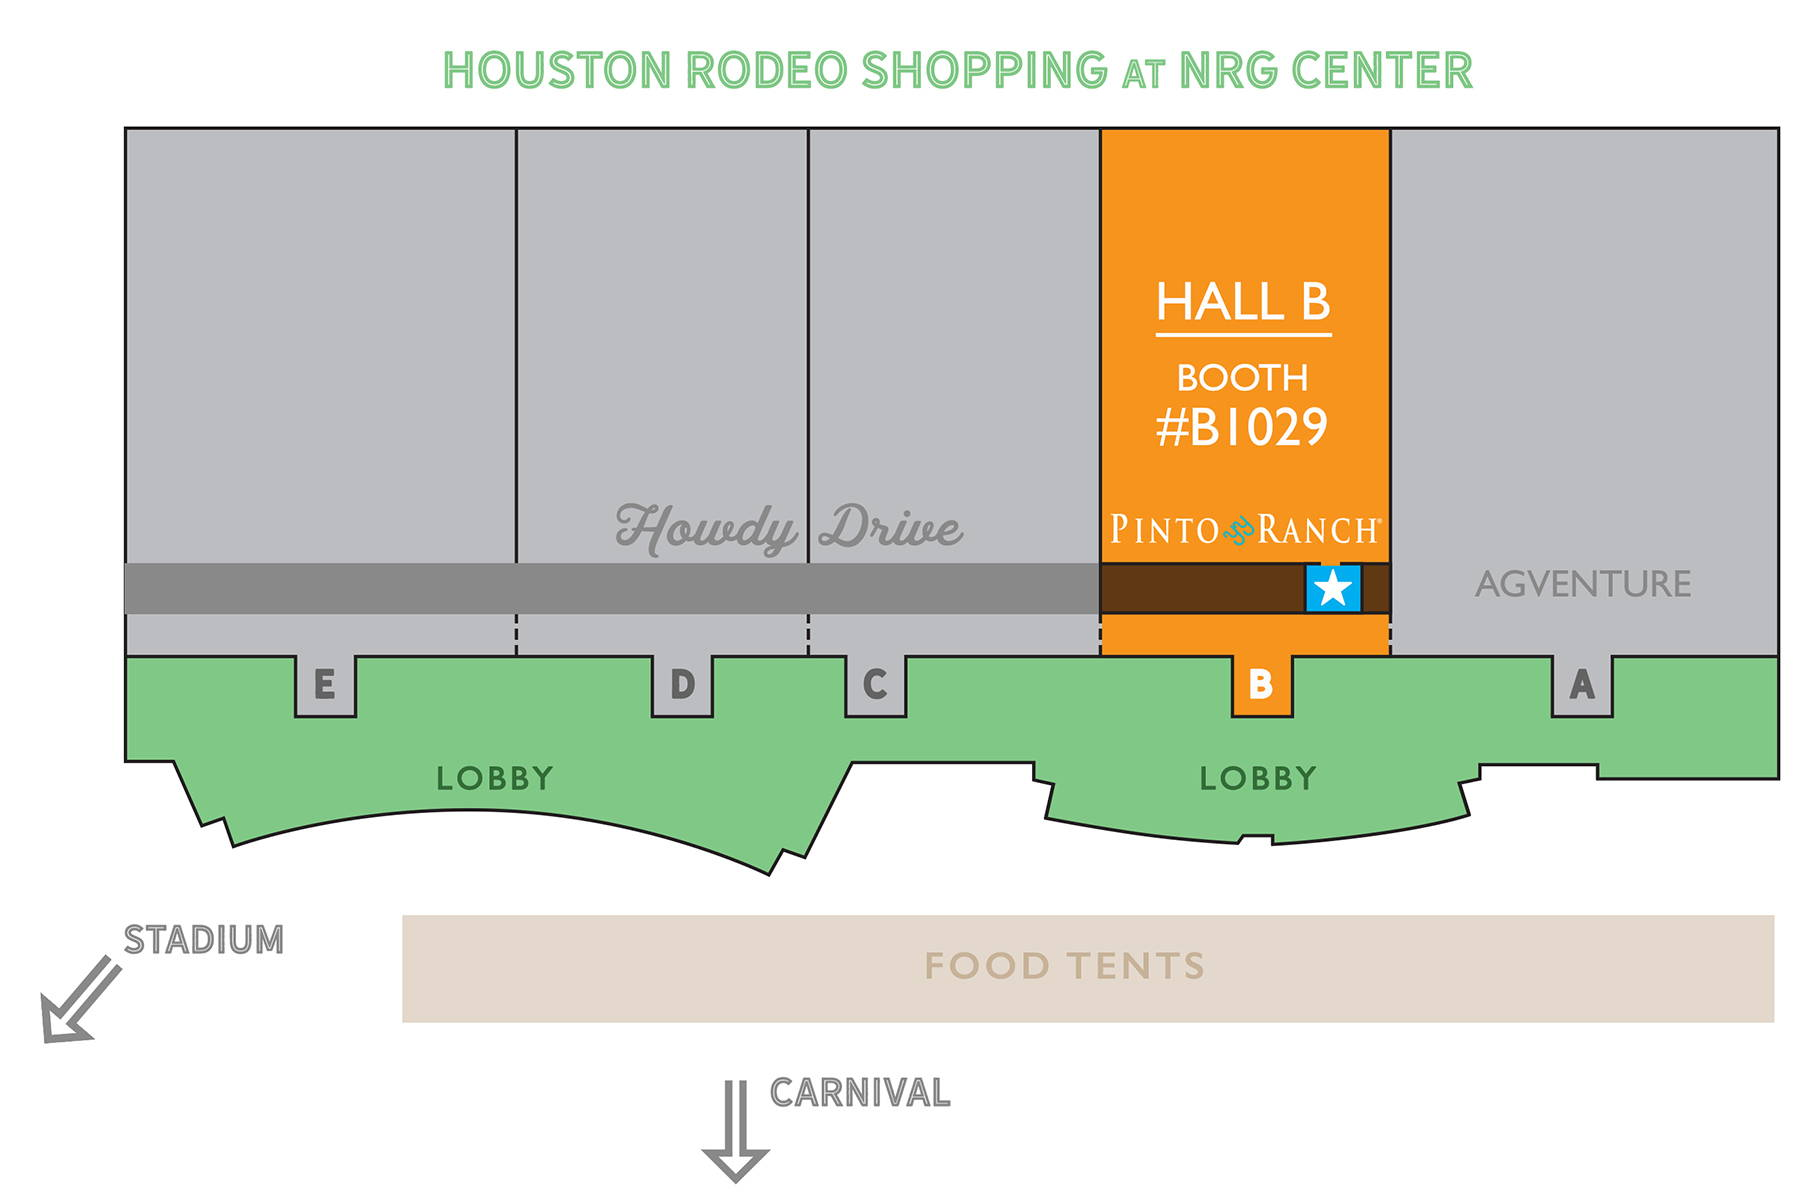 Map of the Houston Rodeo 2019 Pinto Ranch Rodeo Booth